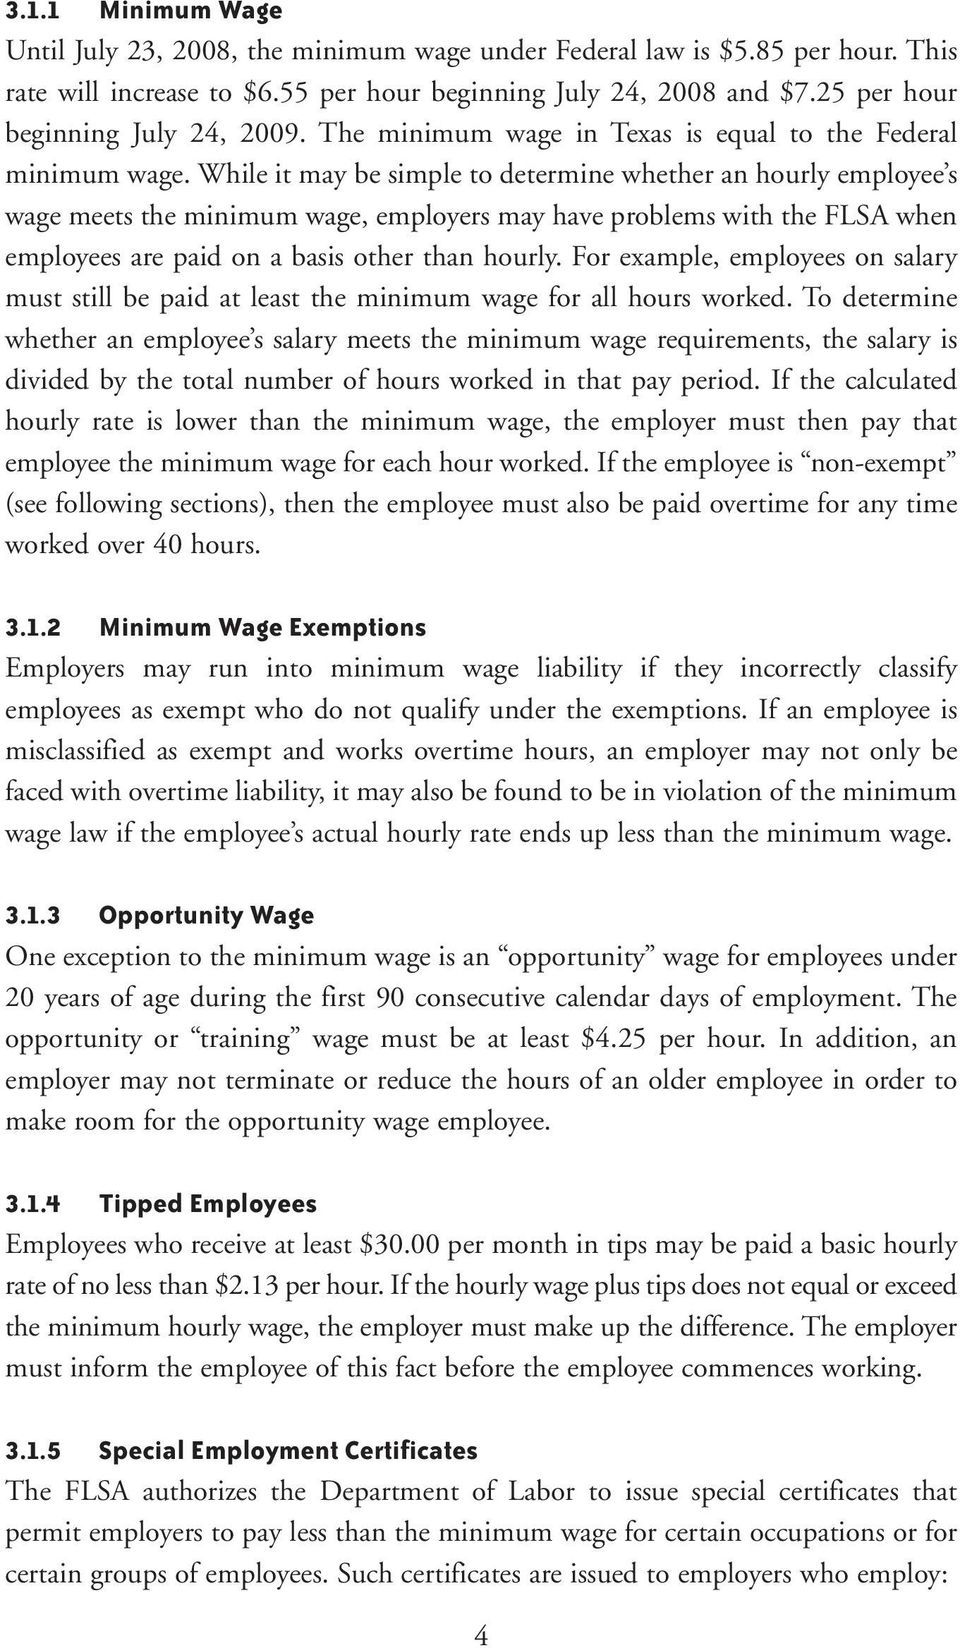 While it may be simple to determine whether an hourly employee s wage meets the minimum wage, employers may have problems with the FLSA when employees are paid on a basis other than hourly.